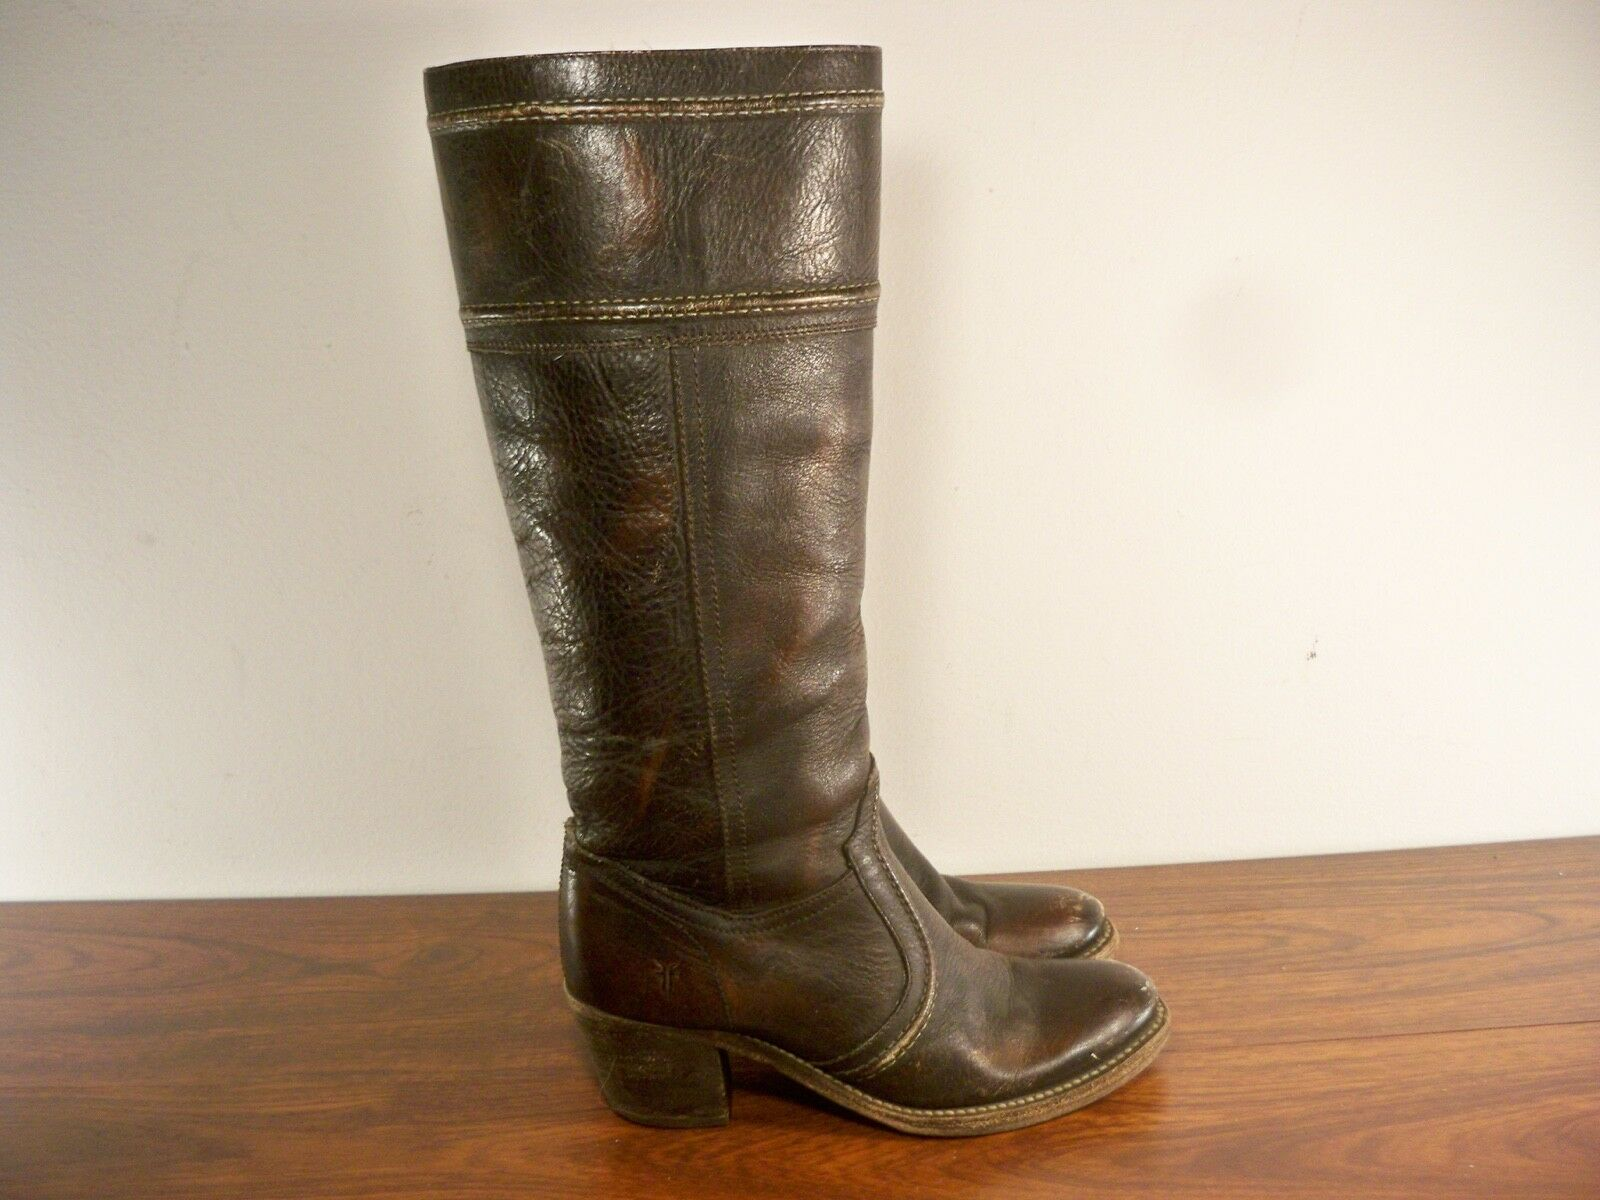 FRYE Women's   77234 Jane 14L Tall Western Stacked Heel Knee-High Boots Size 6.5